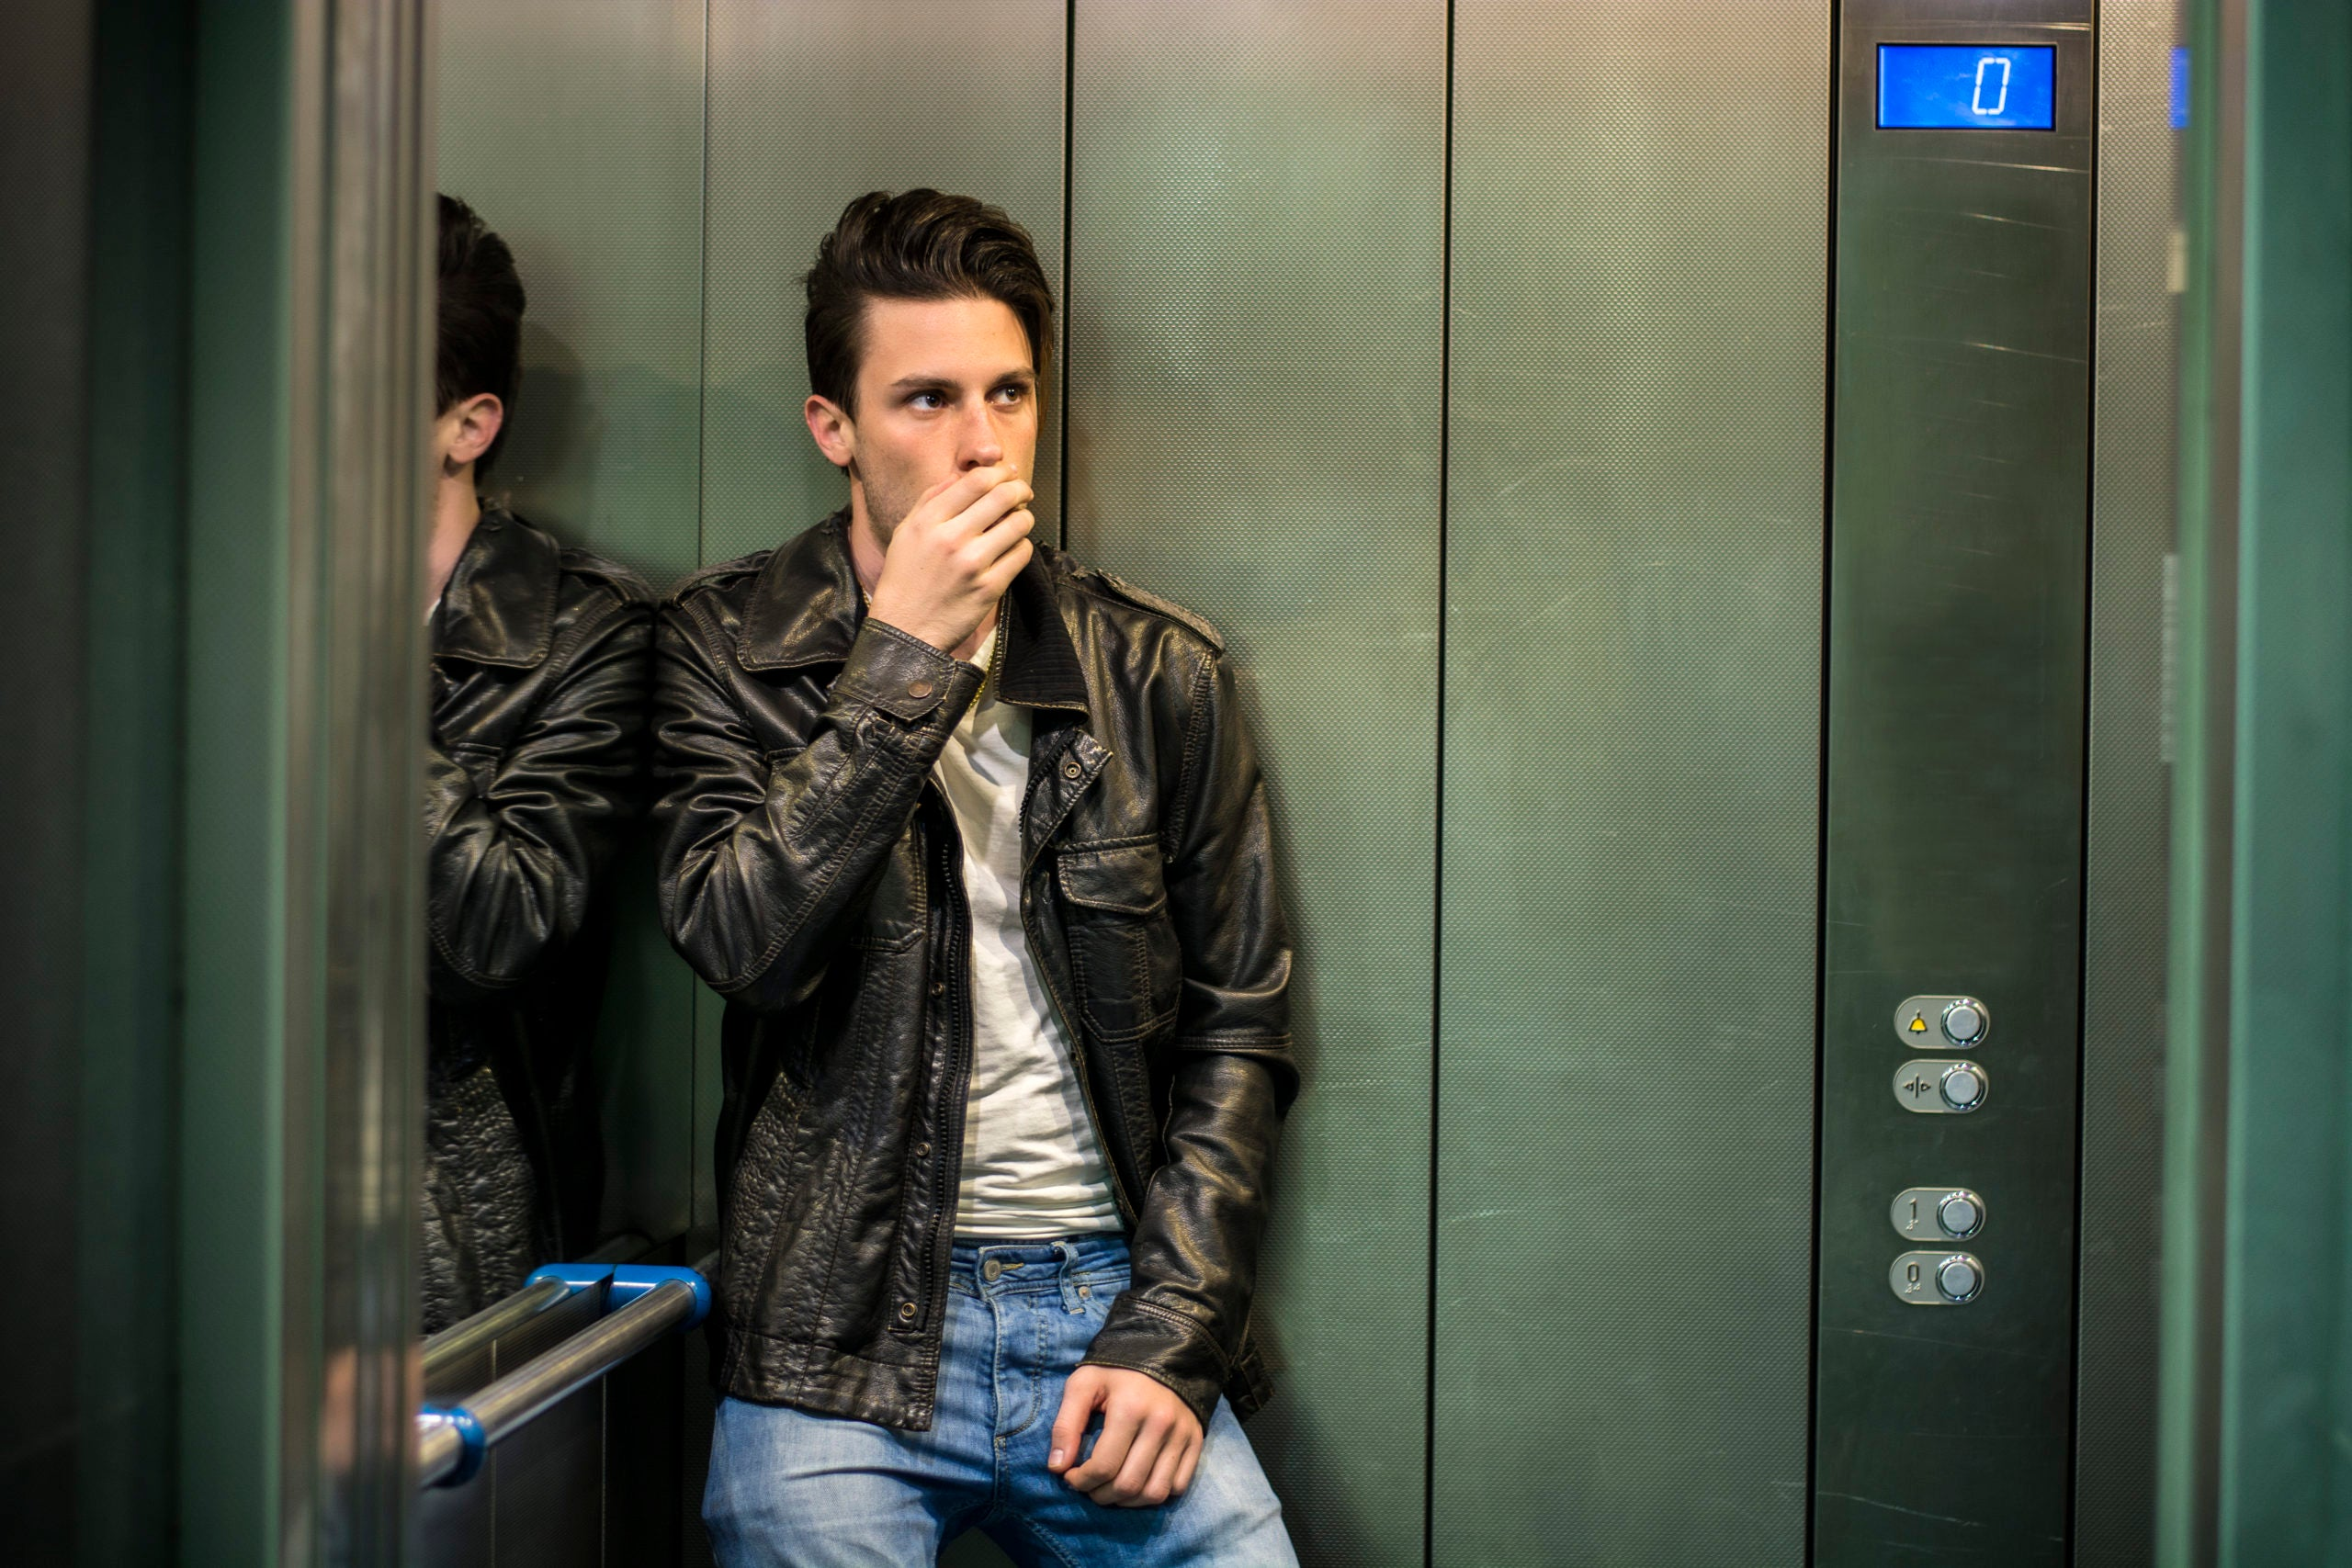 Stuck in an Elevator? Relax, Then Follow These 5 Steps